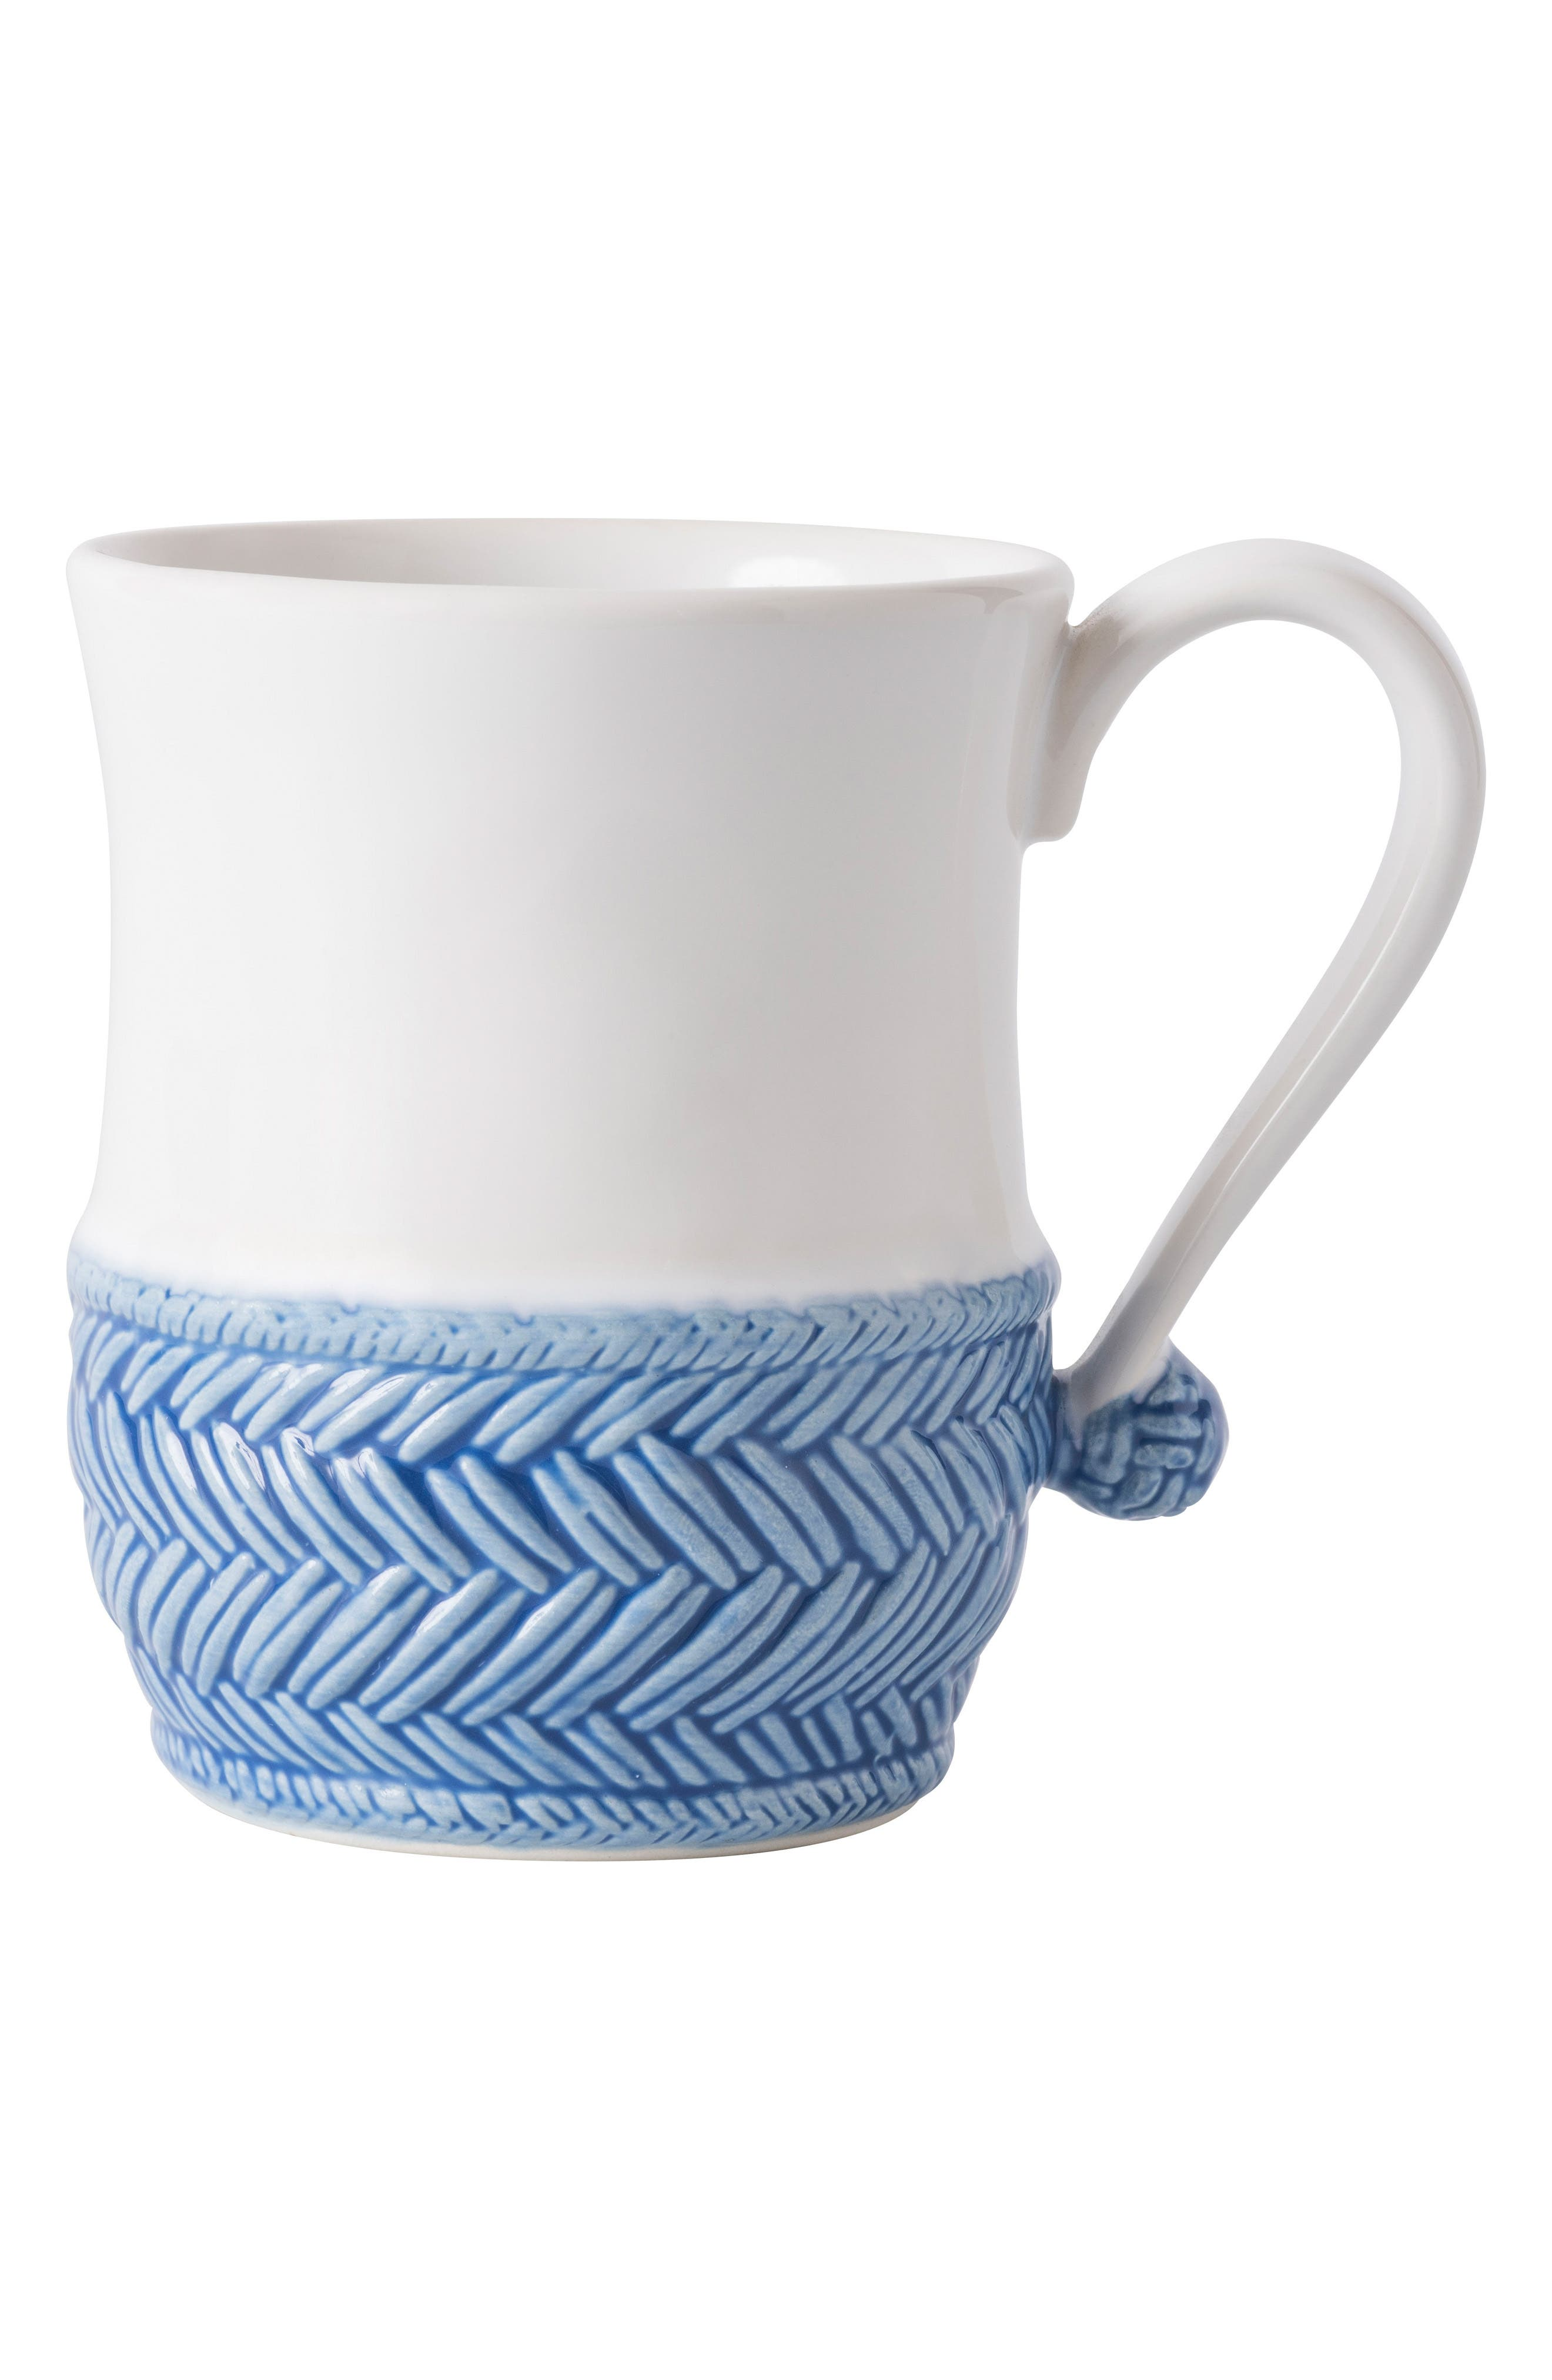 Le Panier Mug,                         Main,                         color, Whitewash/ Delft Blue